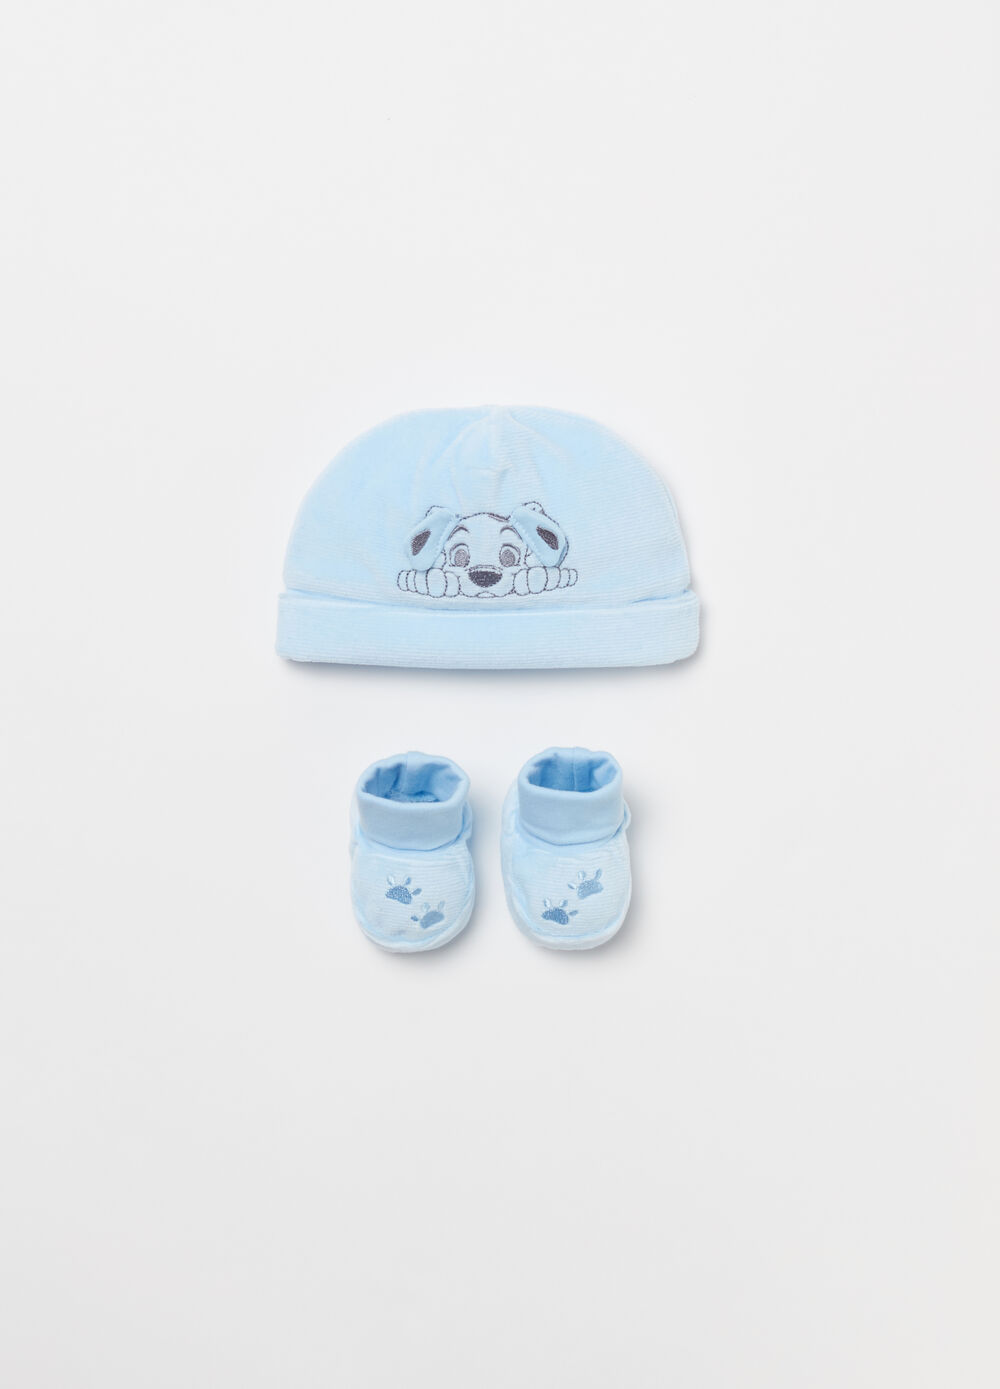 Disney Baby hat and shoes set